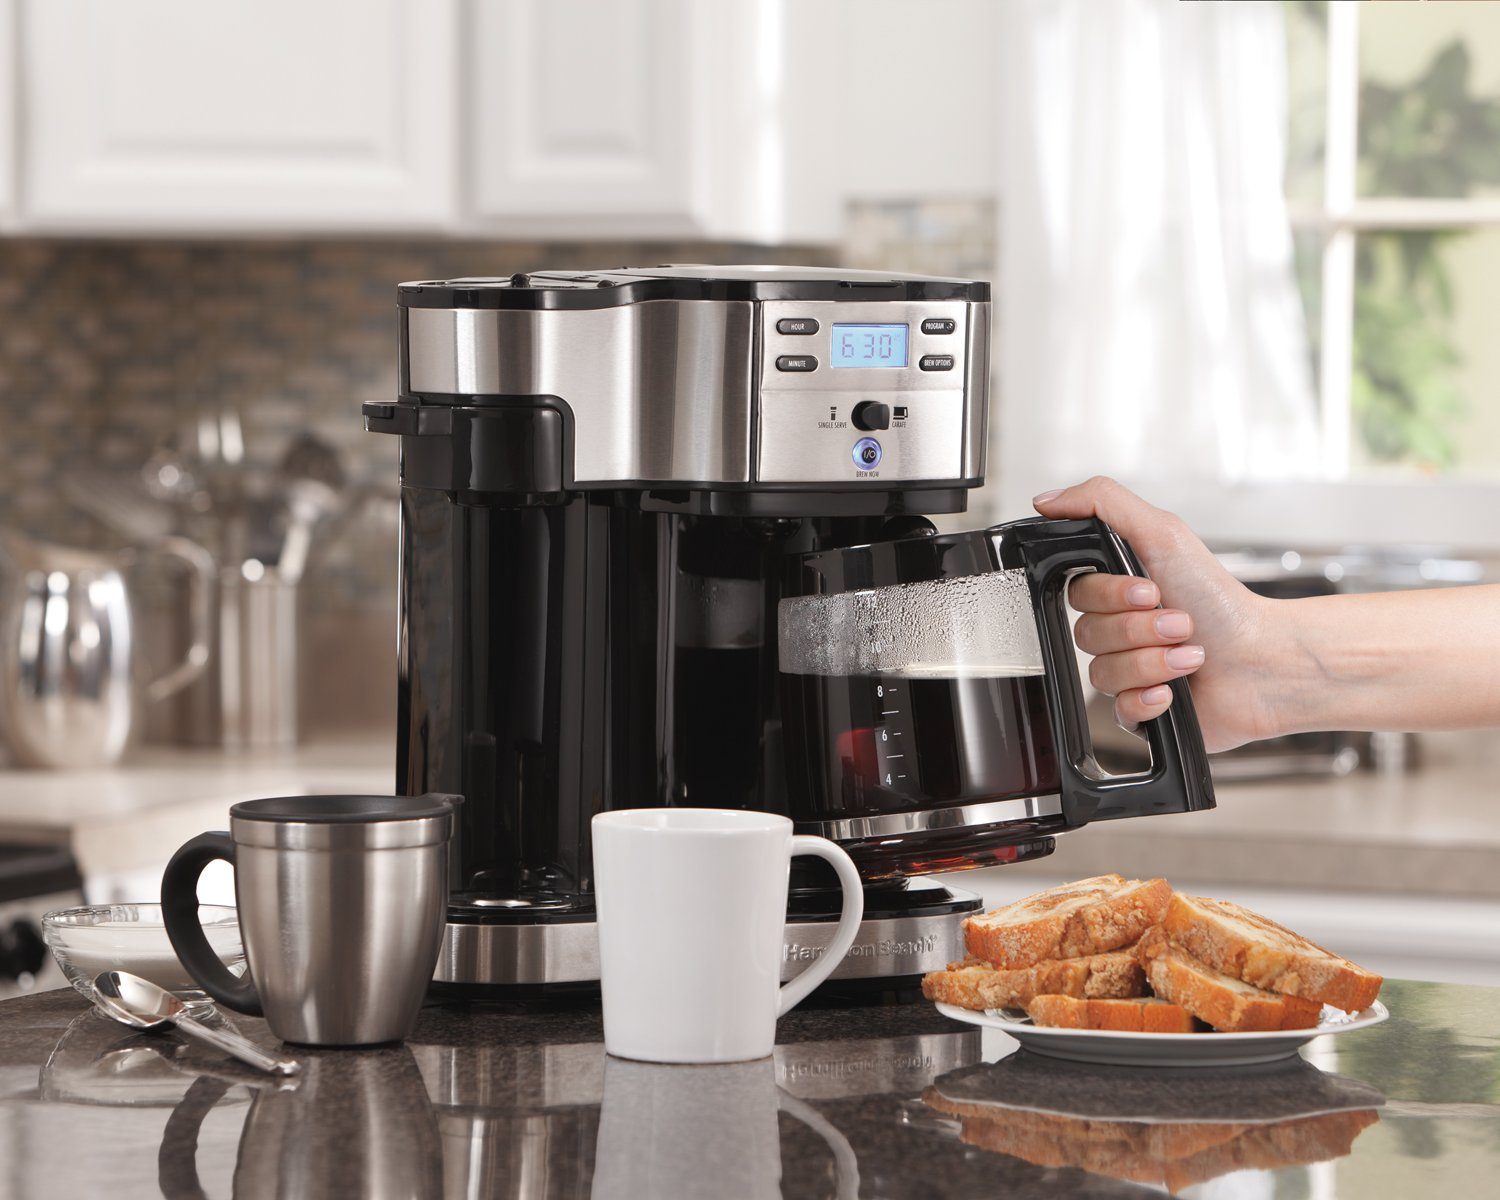 Hamilton Beach (49980A) Single Serve Coffee Maker and Coffee Pot Maker, Programmable, Black/Stainless Steel by Hamilton Beach (Image #3)